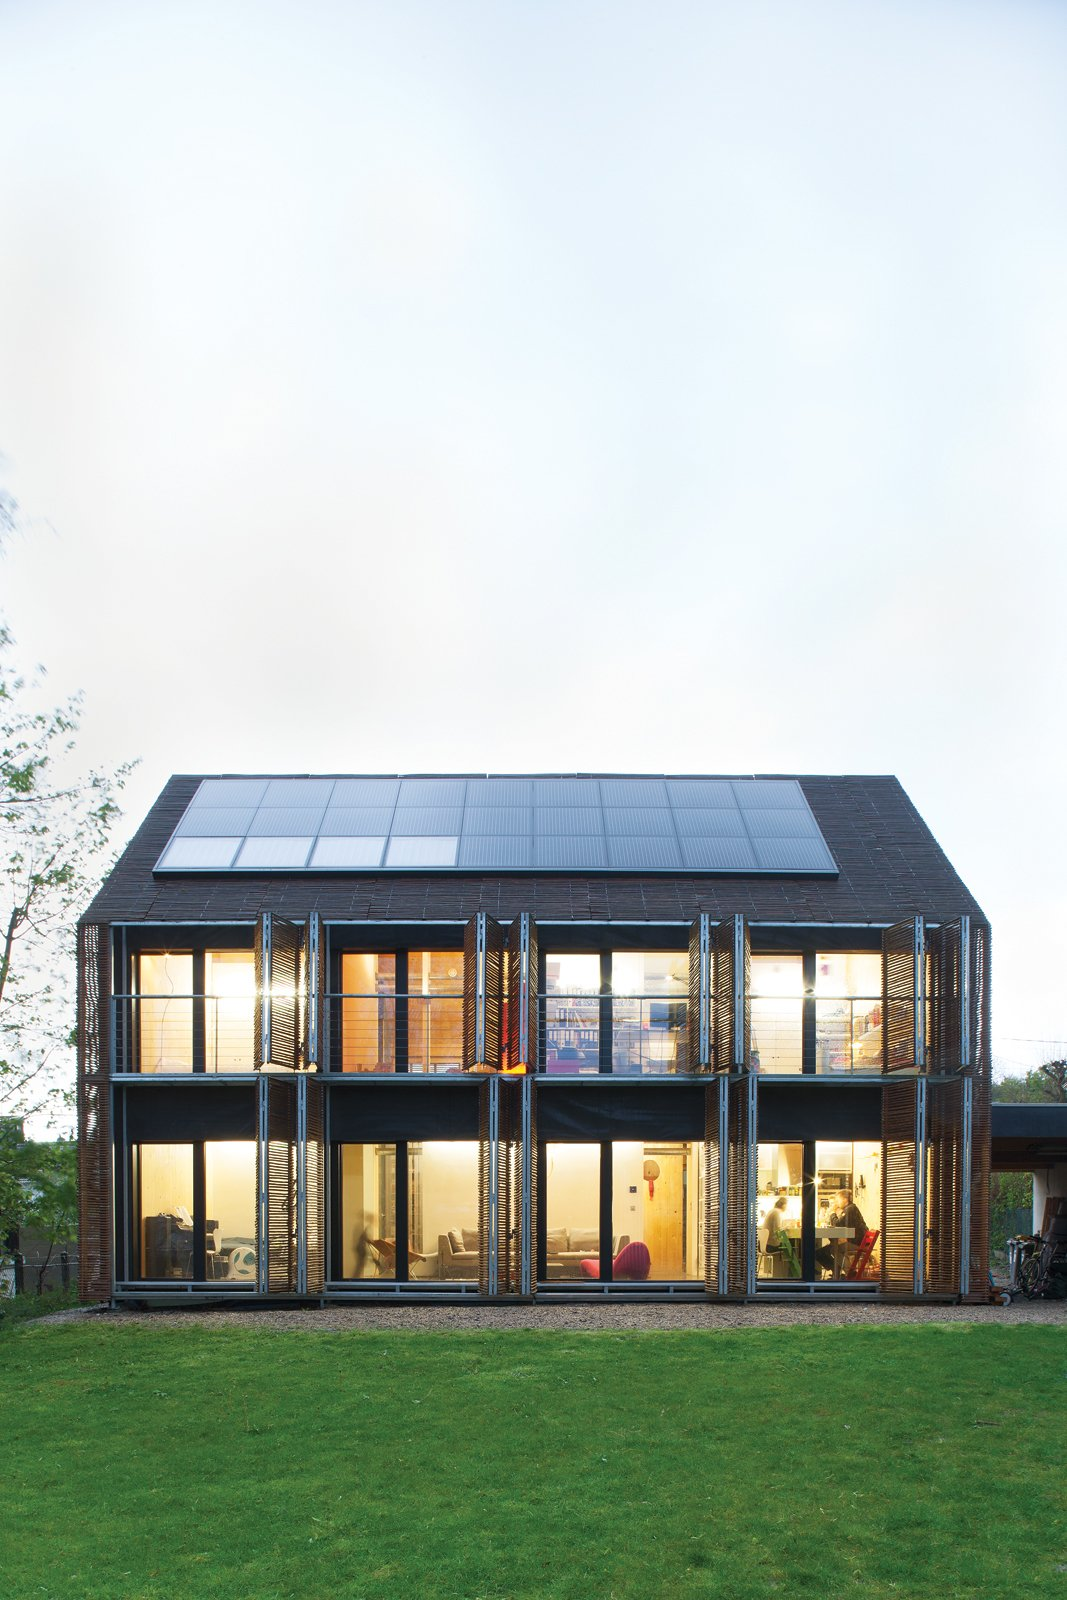 Sun Volt  With the roof angled at 43 degrees, the architects lined the southern slant of the house with solar panels to collect as many rays as possible. Karanesheva and Witzmann started with four, but then added 23 more, all by Systaïc; the company gave them a deal since theirs was its first installation in France. The panels now collect far more energy than the home actually needs, a precious resource that the pair sells back to the power company.  systaic.com  Photo 2 of 8 in Passive Progressive